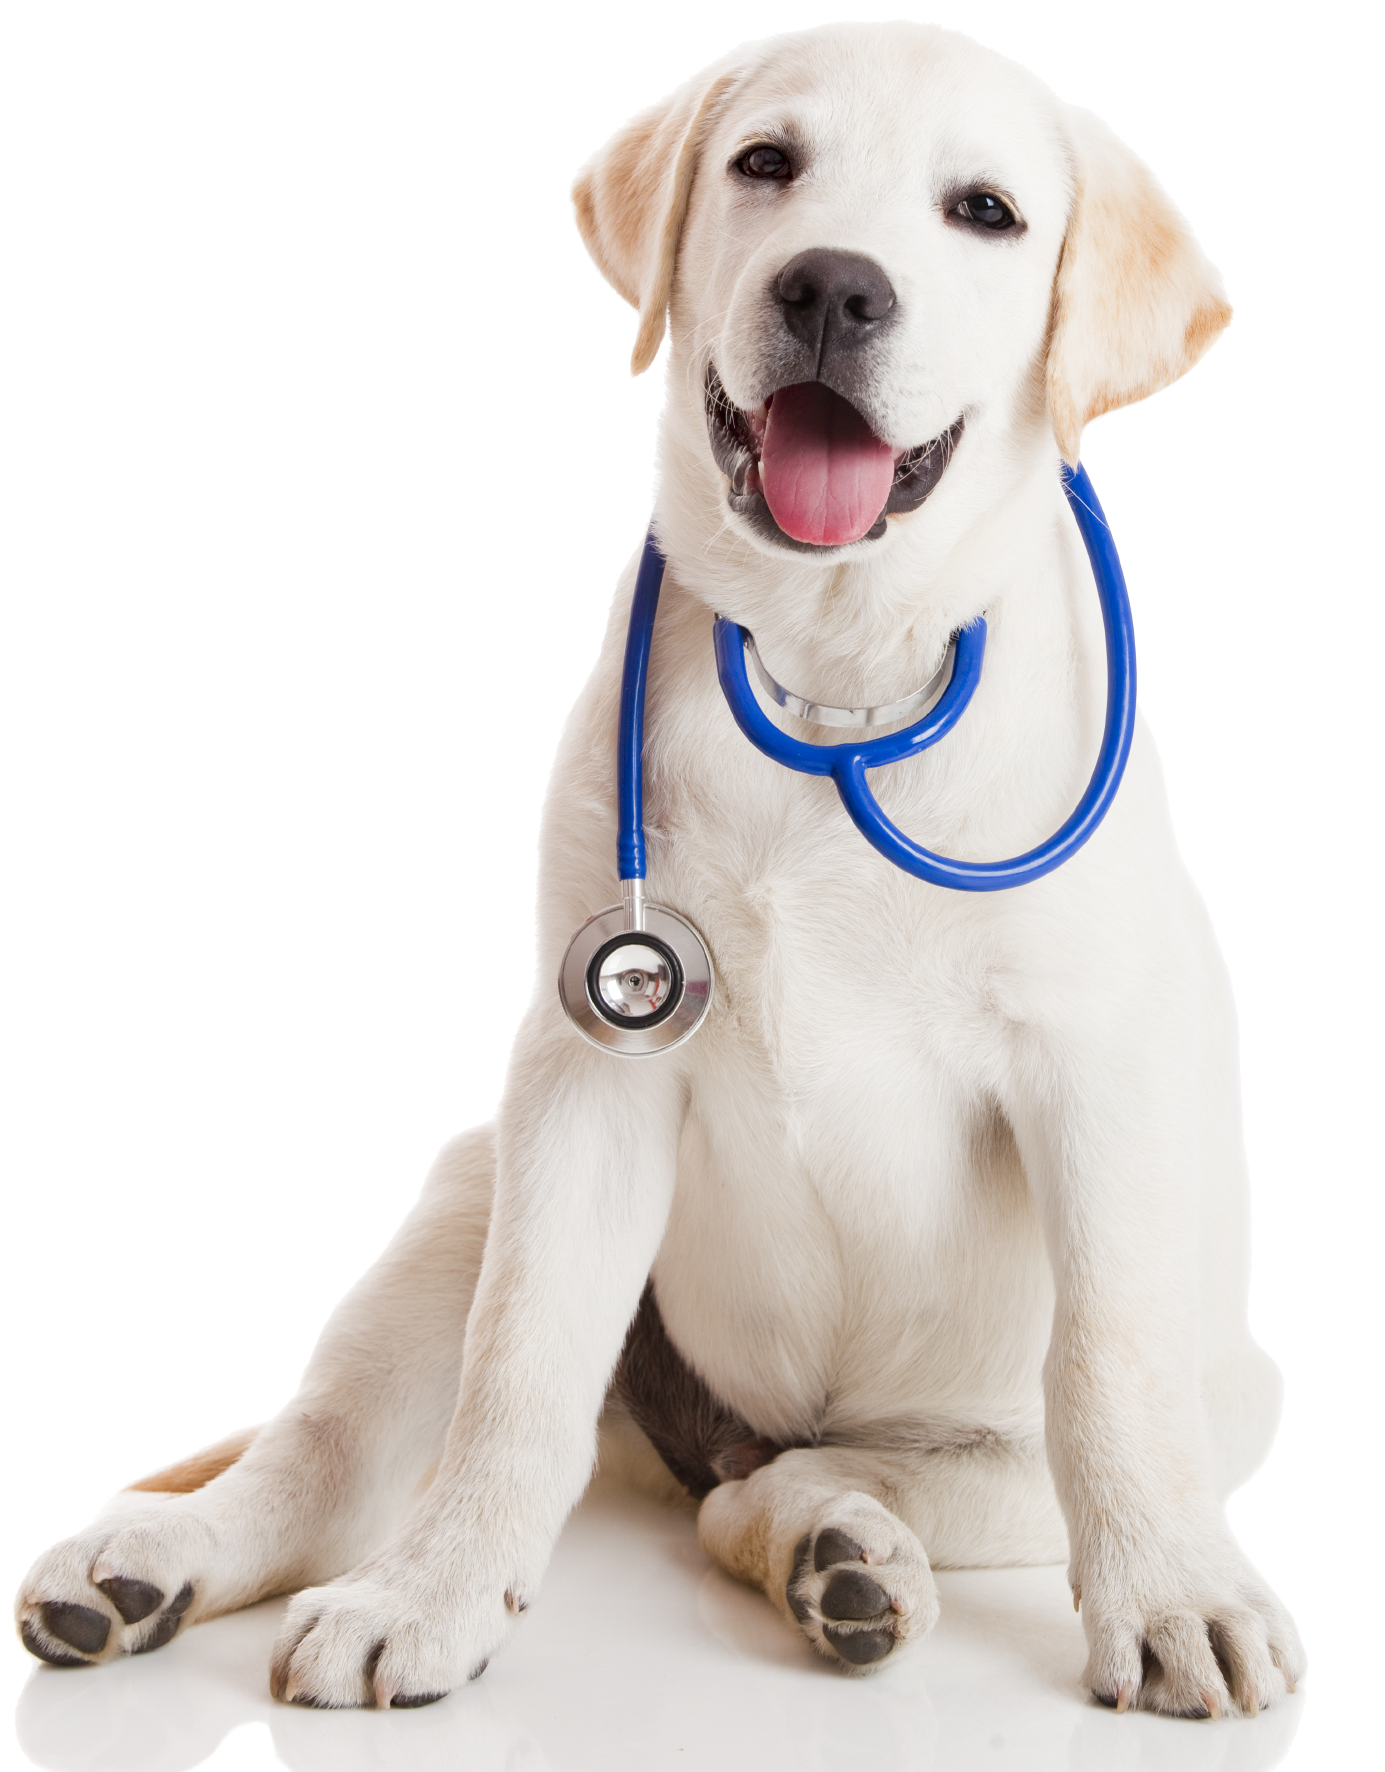 lab_pup_stethescope.png - Cat Vet PNG